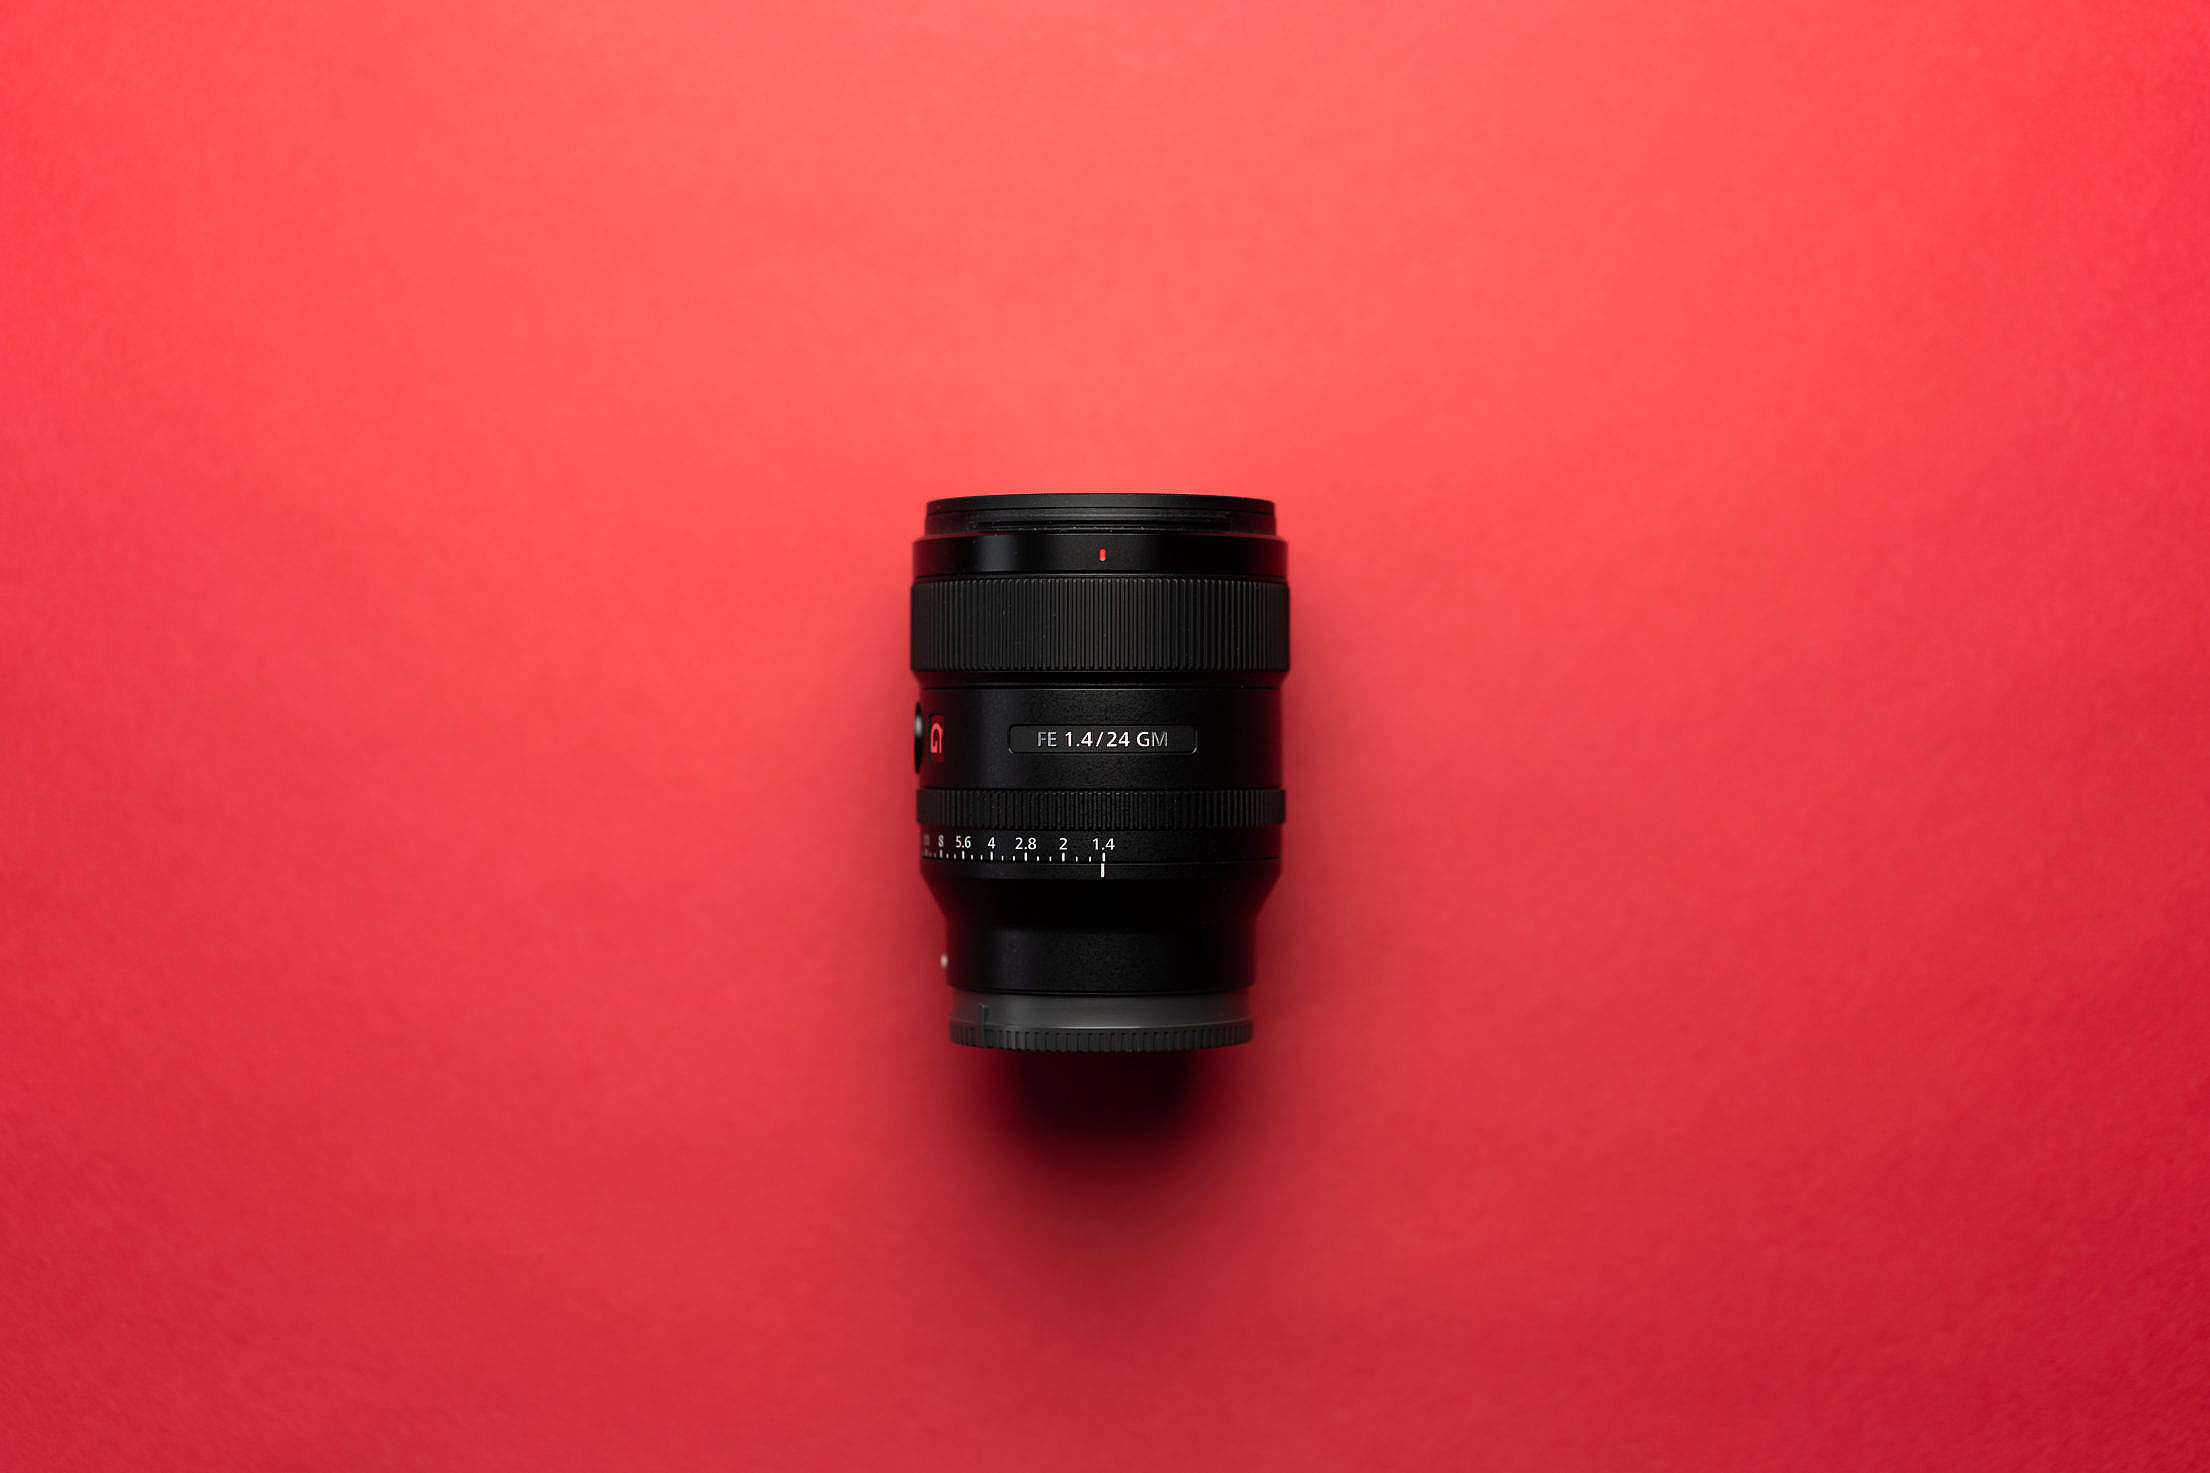 Camera Lens on a Red Background Free Stock Photo